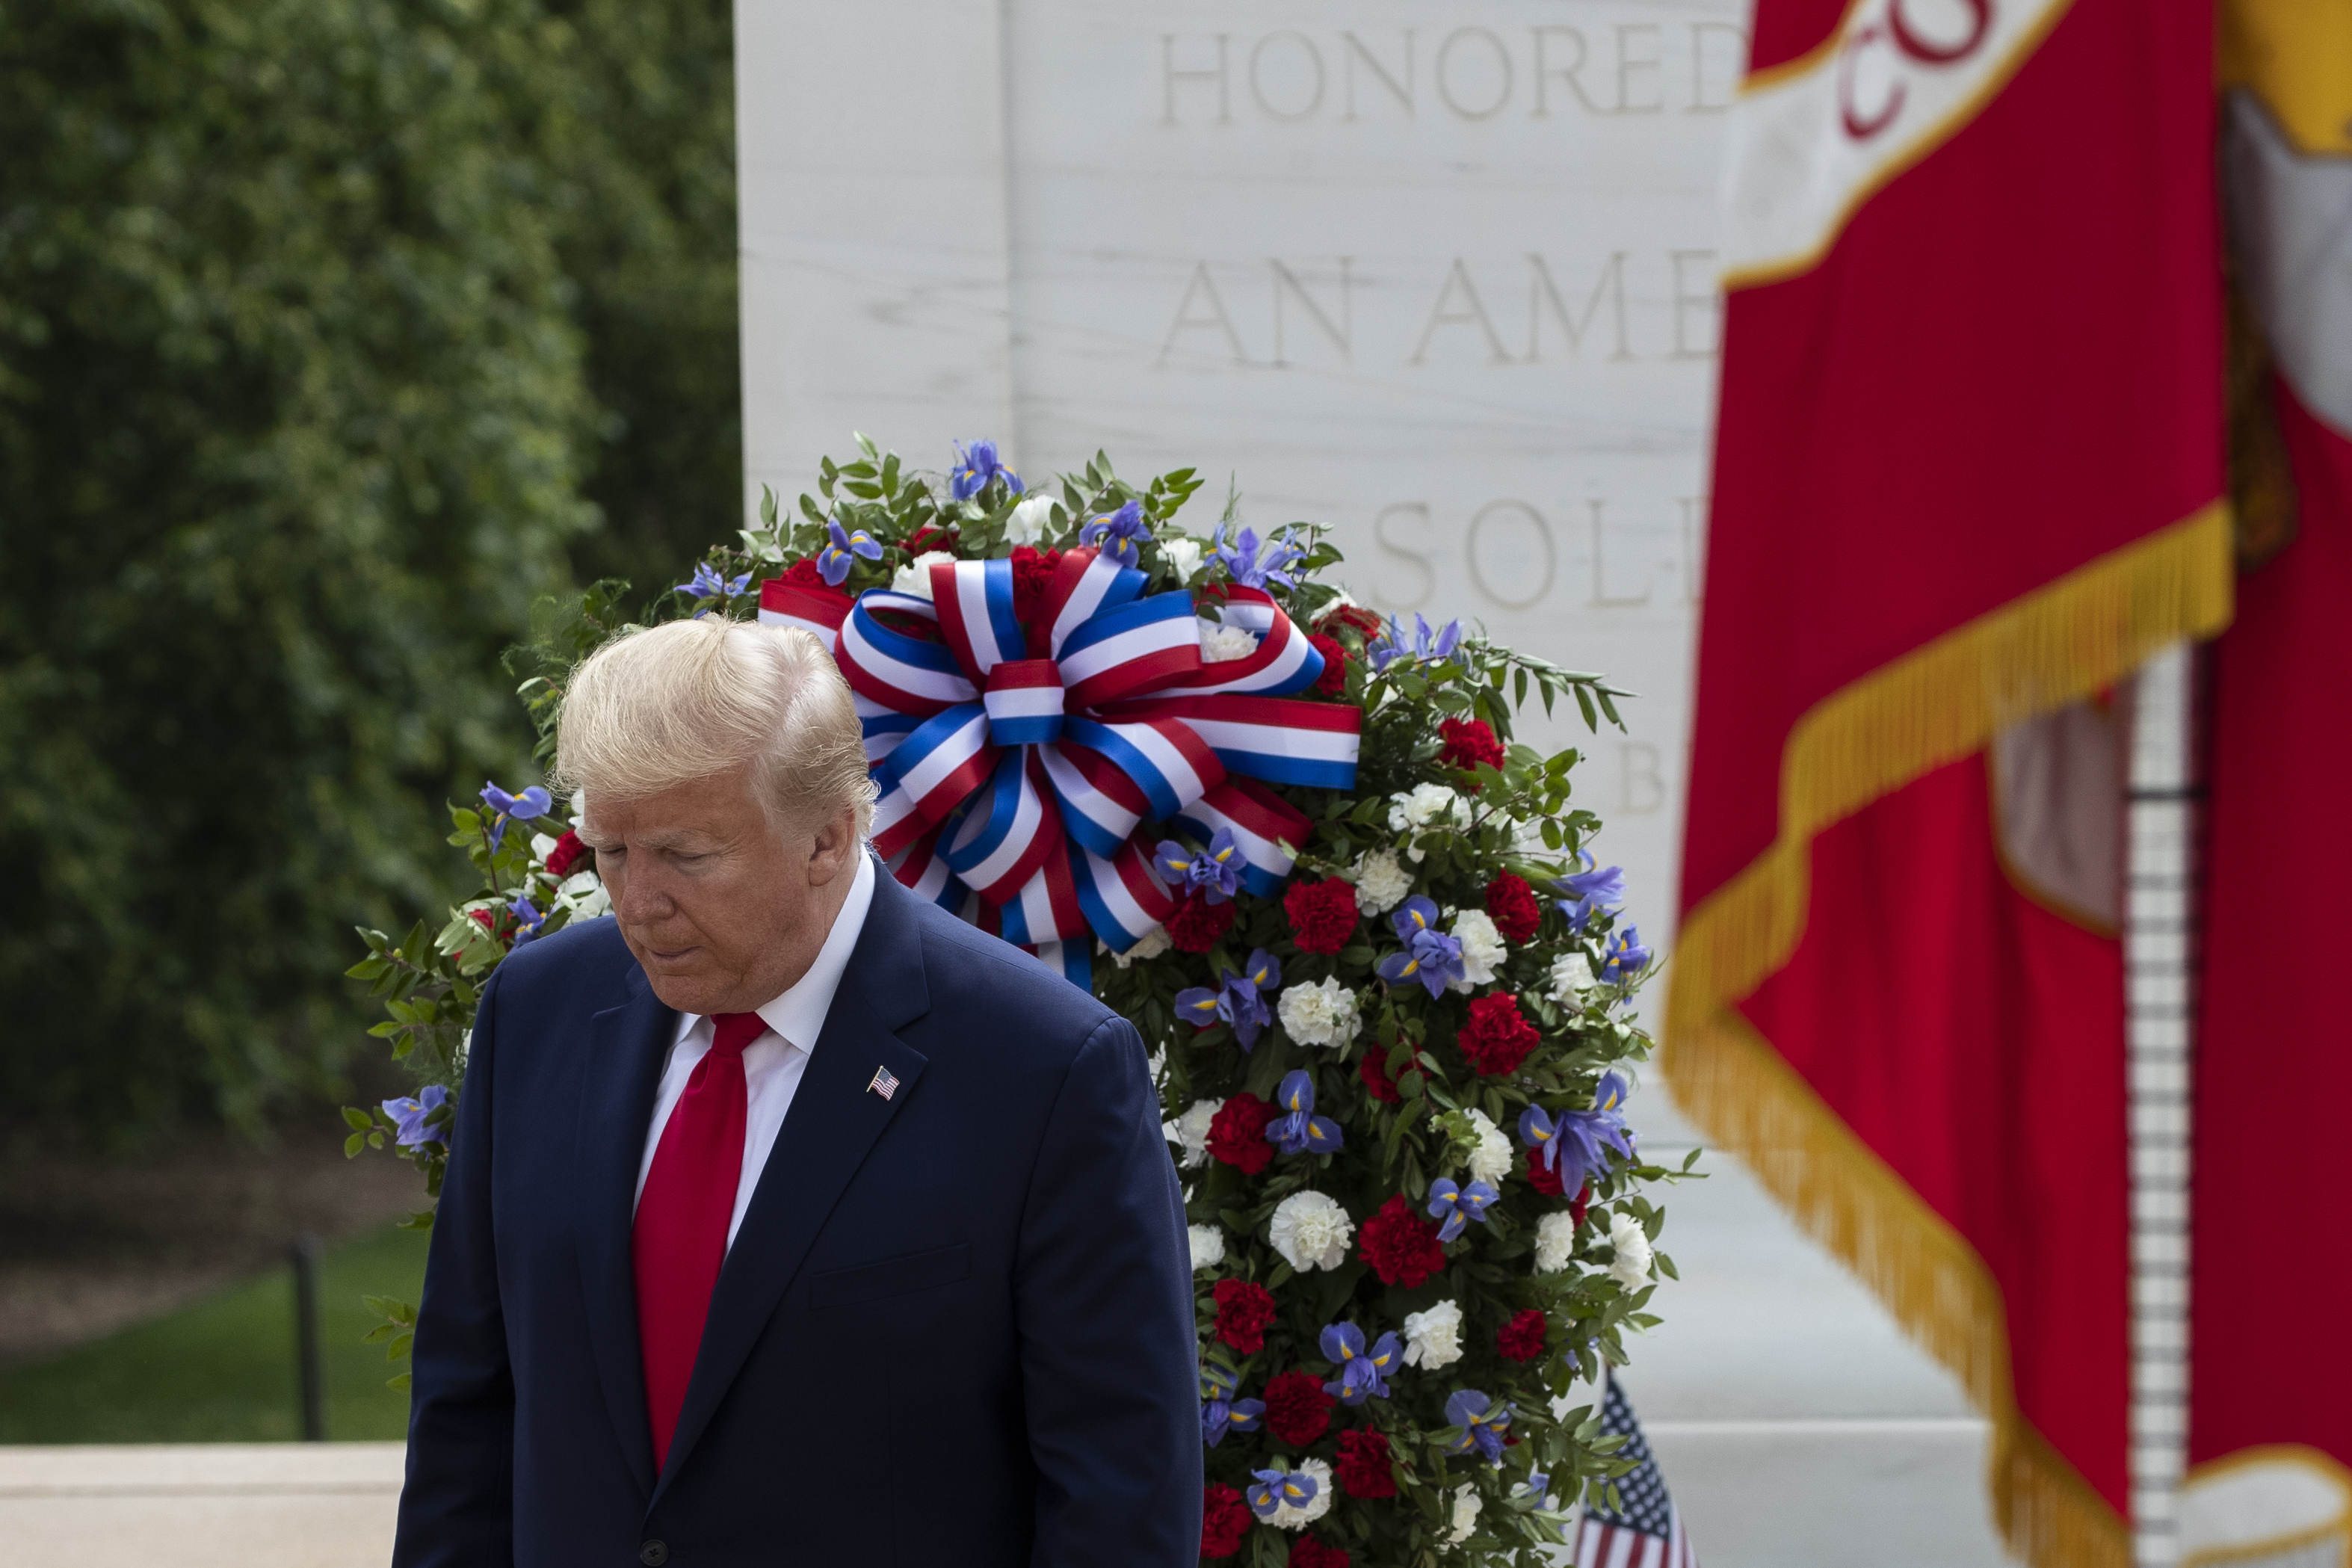 President Donald Trump turns after placing a wreath at the Tomb of the Unknown Soldier in Arlington National Cemetery, in honor of Memorial Day, Monday, May 25, 2020, in Arlington, Va. Photo: AP